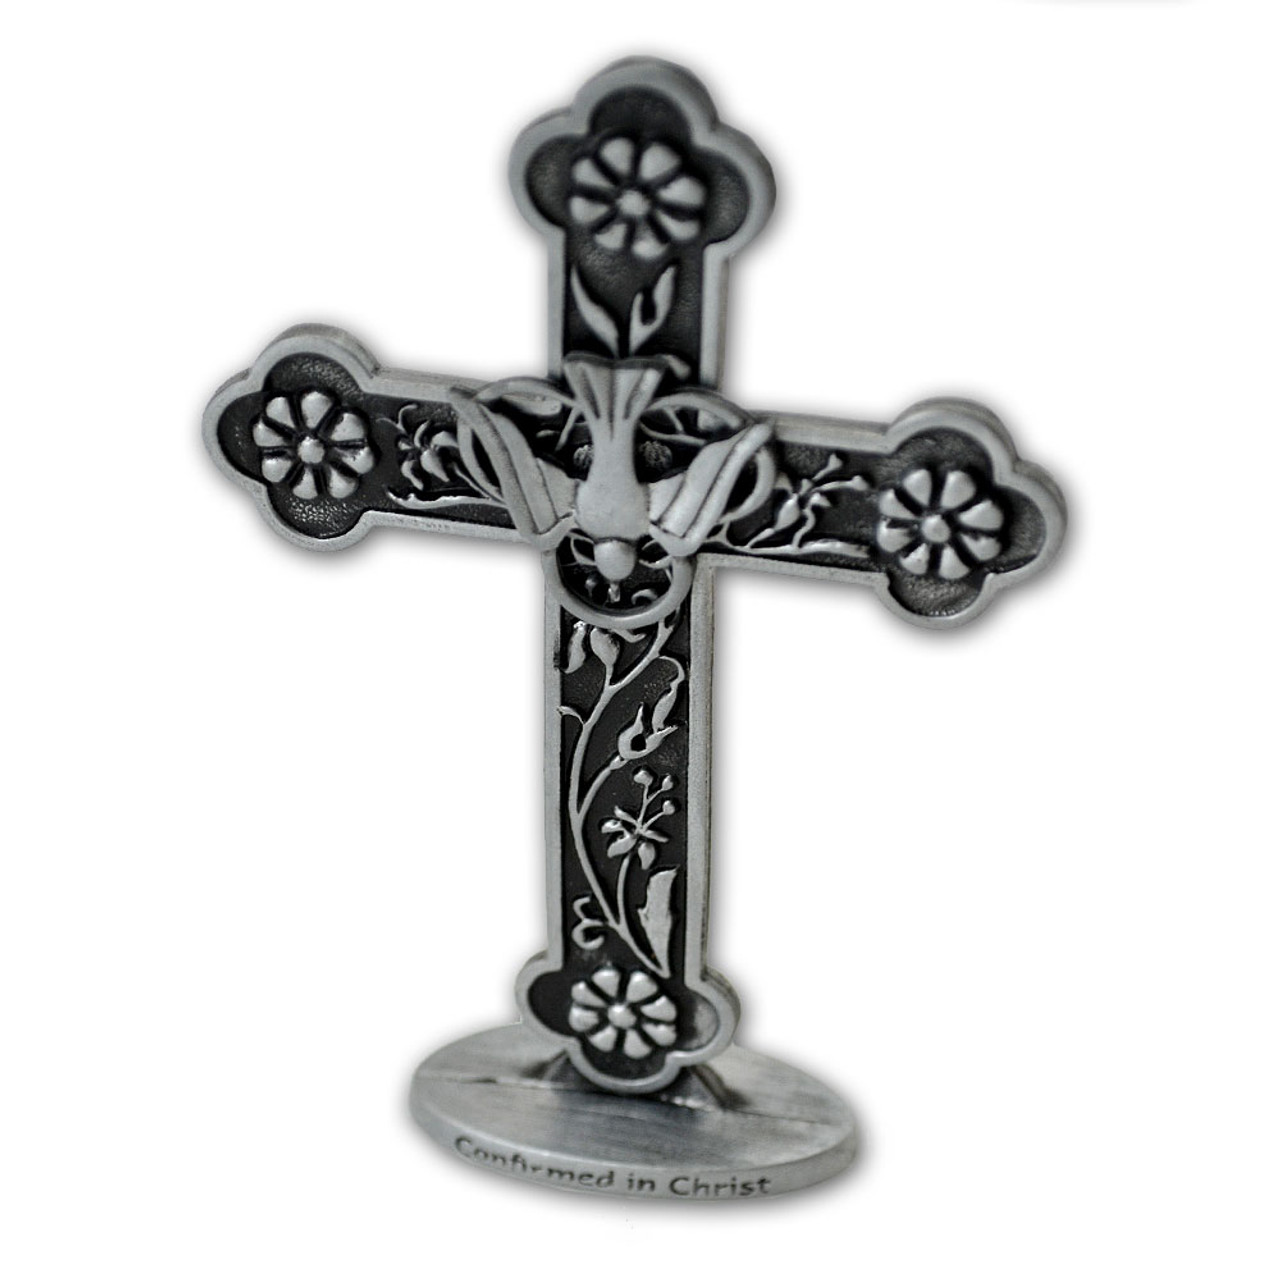 Standing Pewter Confirmation Cross with Dove